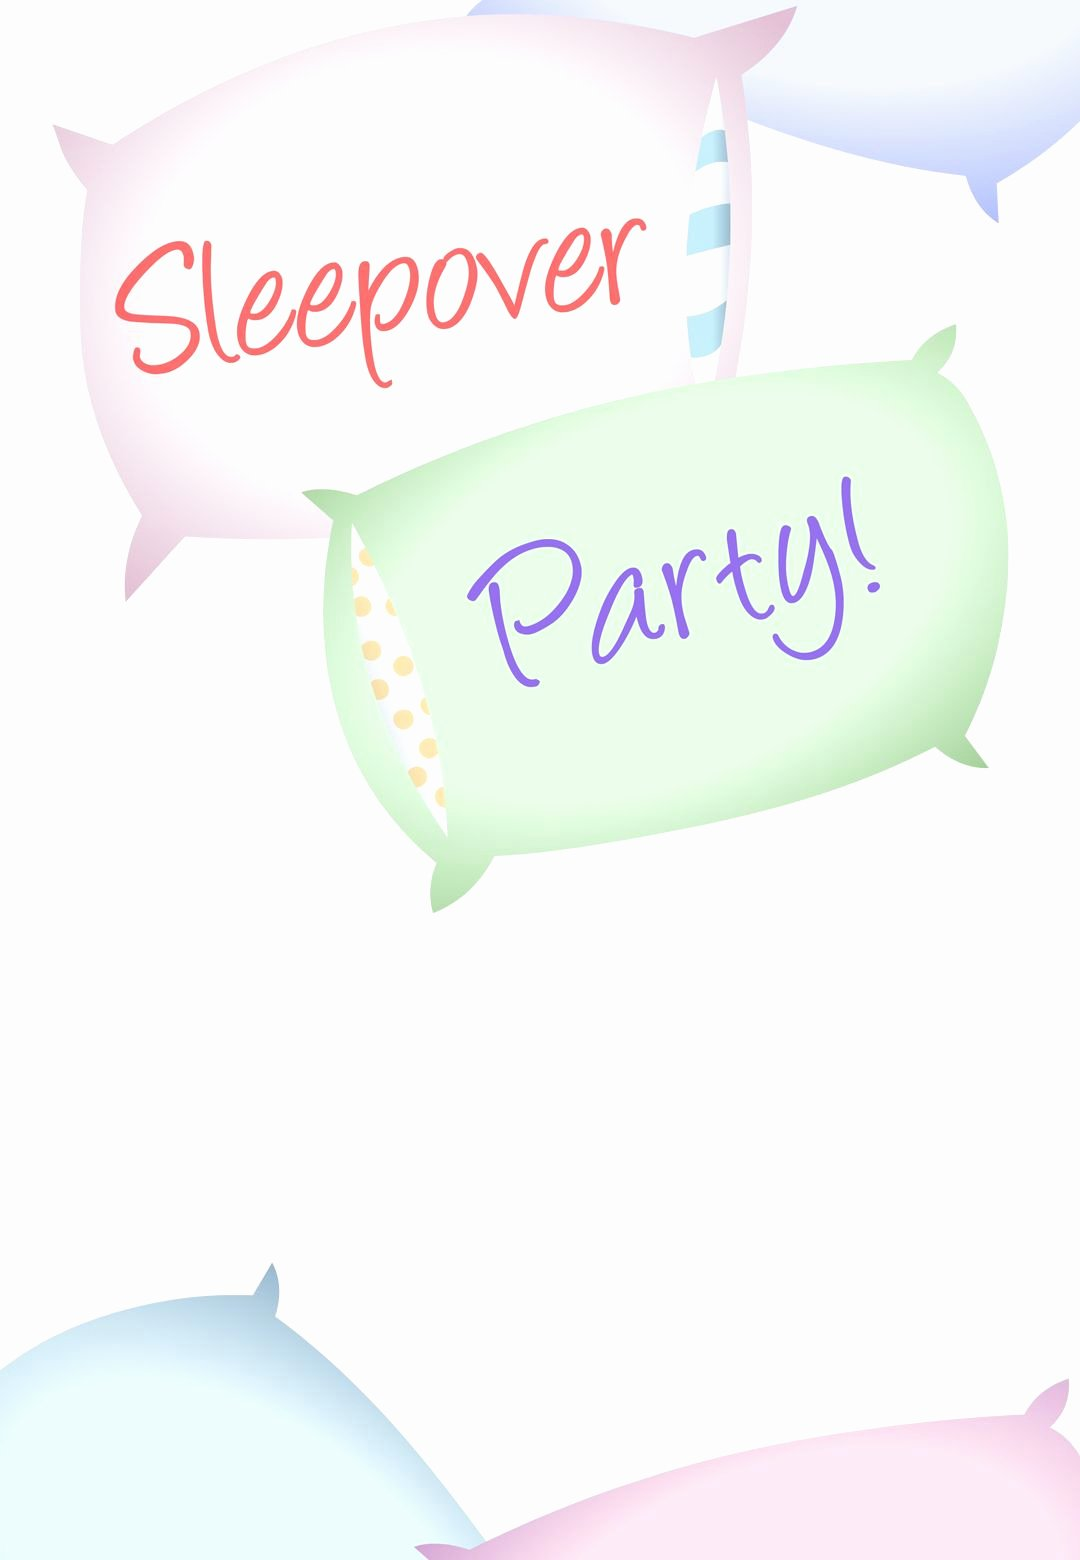 Free Sleepover Invitation Template Luxury Free Printable Sleepover Party Invitation